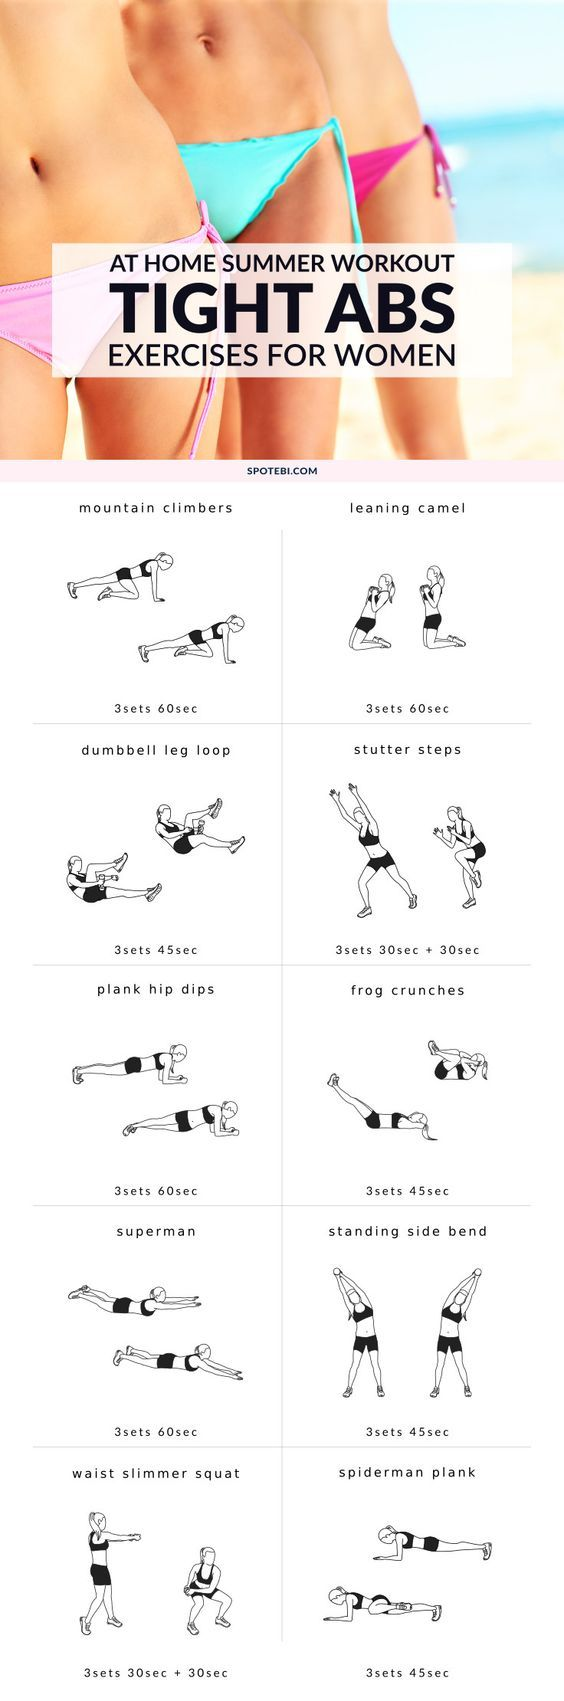 Get a flat, toned stomach and snap into shape with this bikini body tight tummy workout. 10 core-strengthening moves to help you sculpt sexy curves and say goodbye to shapewear for good. Slim, strong tummy here we come! http://www.spotebi.com/workout-routines/bikini-body-tight-tummy-workout/: